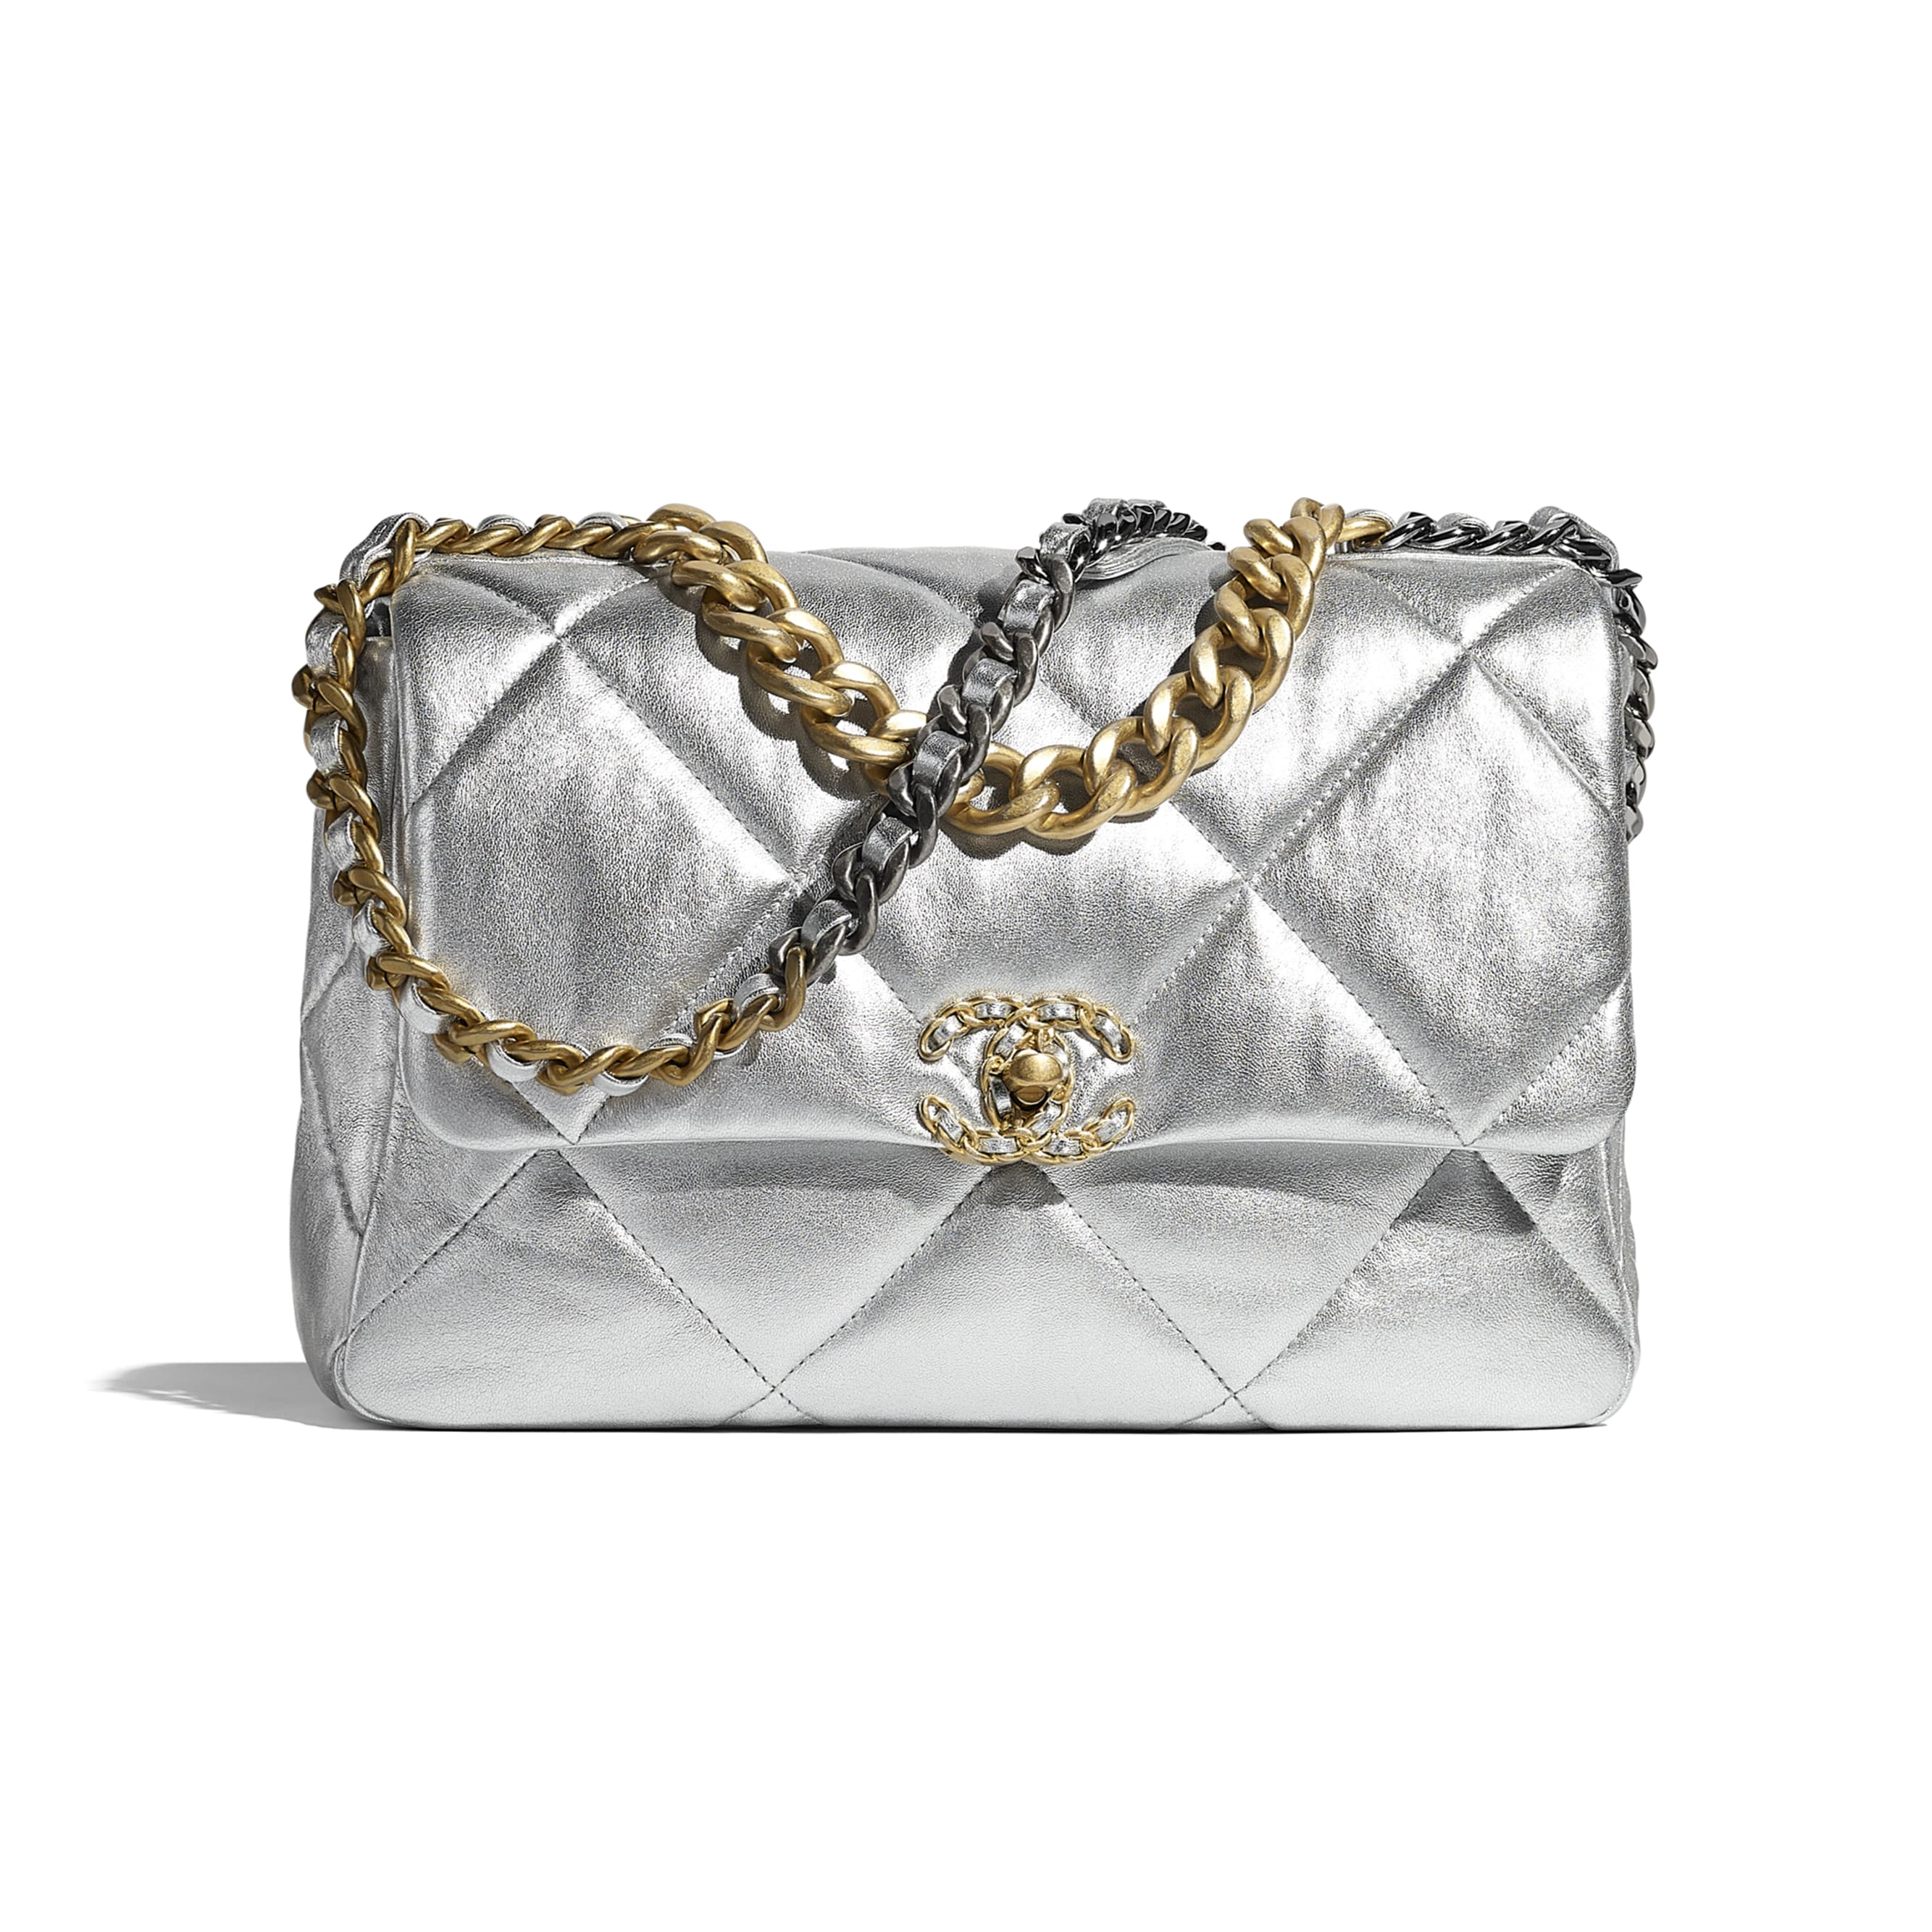 CHANEL 19 Large Flap Bag - Silver - Metallic Lambskin, Gold-Tone, Silver-Tone & Ruthenium-Finish Metal - CHANEL - Default view - see standard sized version